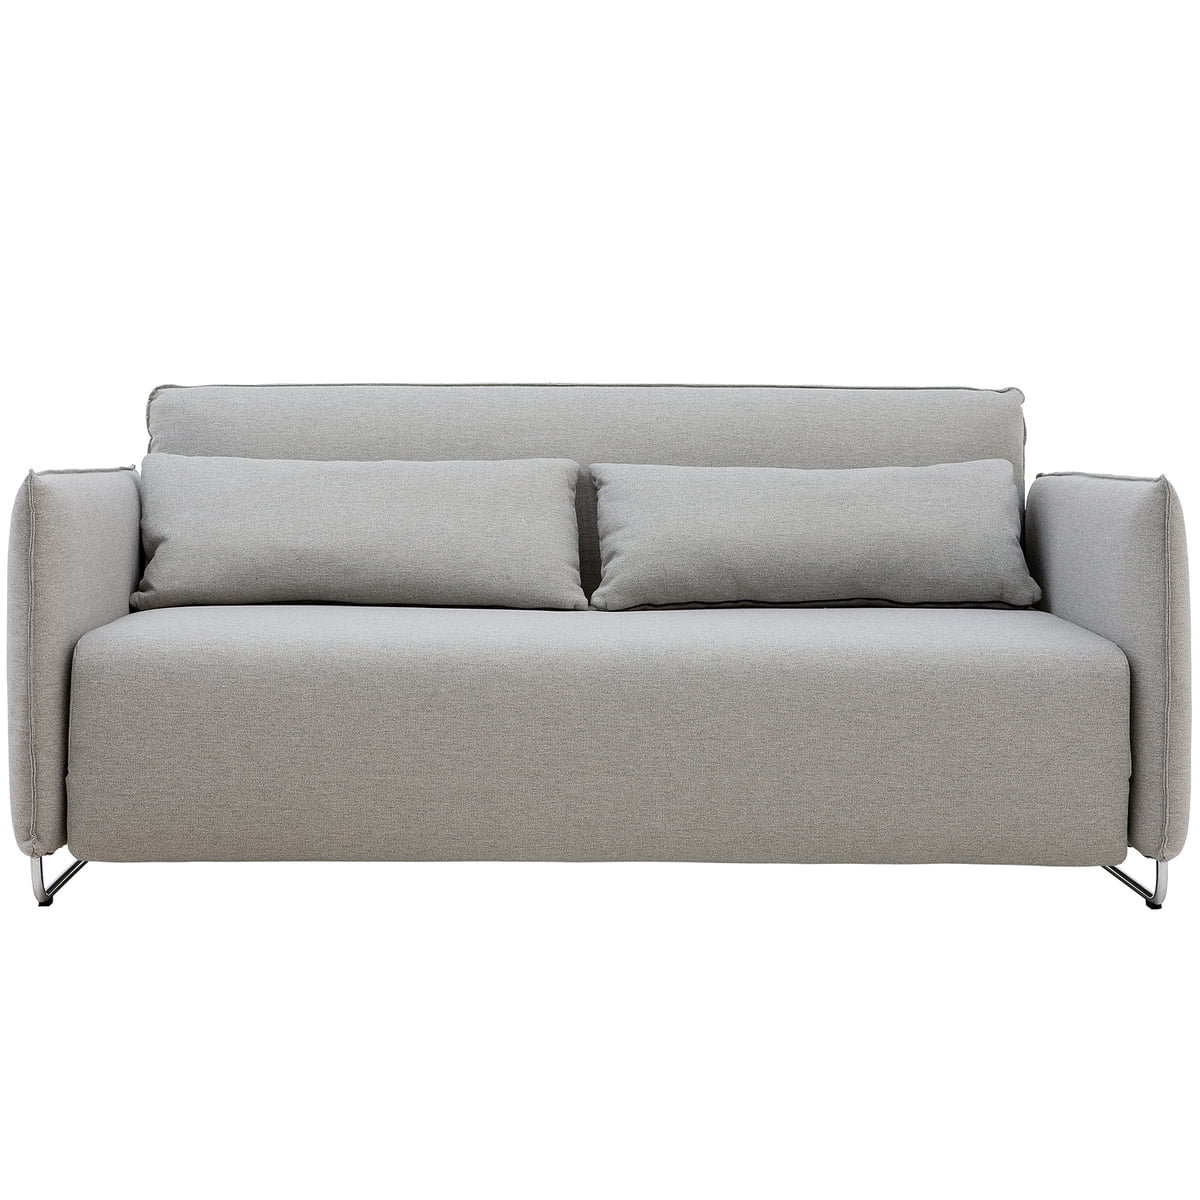 Prime Softline Cord Sofa Bed Felt Grey 620 Ocoug Best Dining Table And Chair Ideas Images Ocougorg